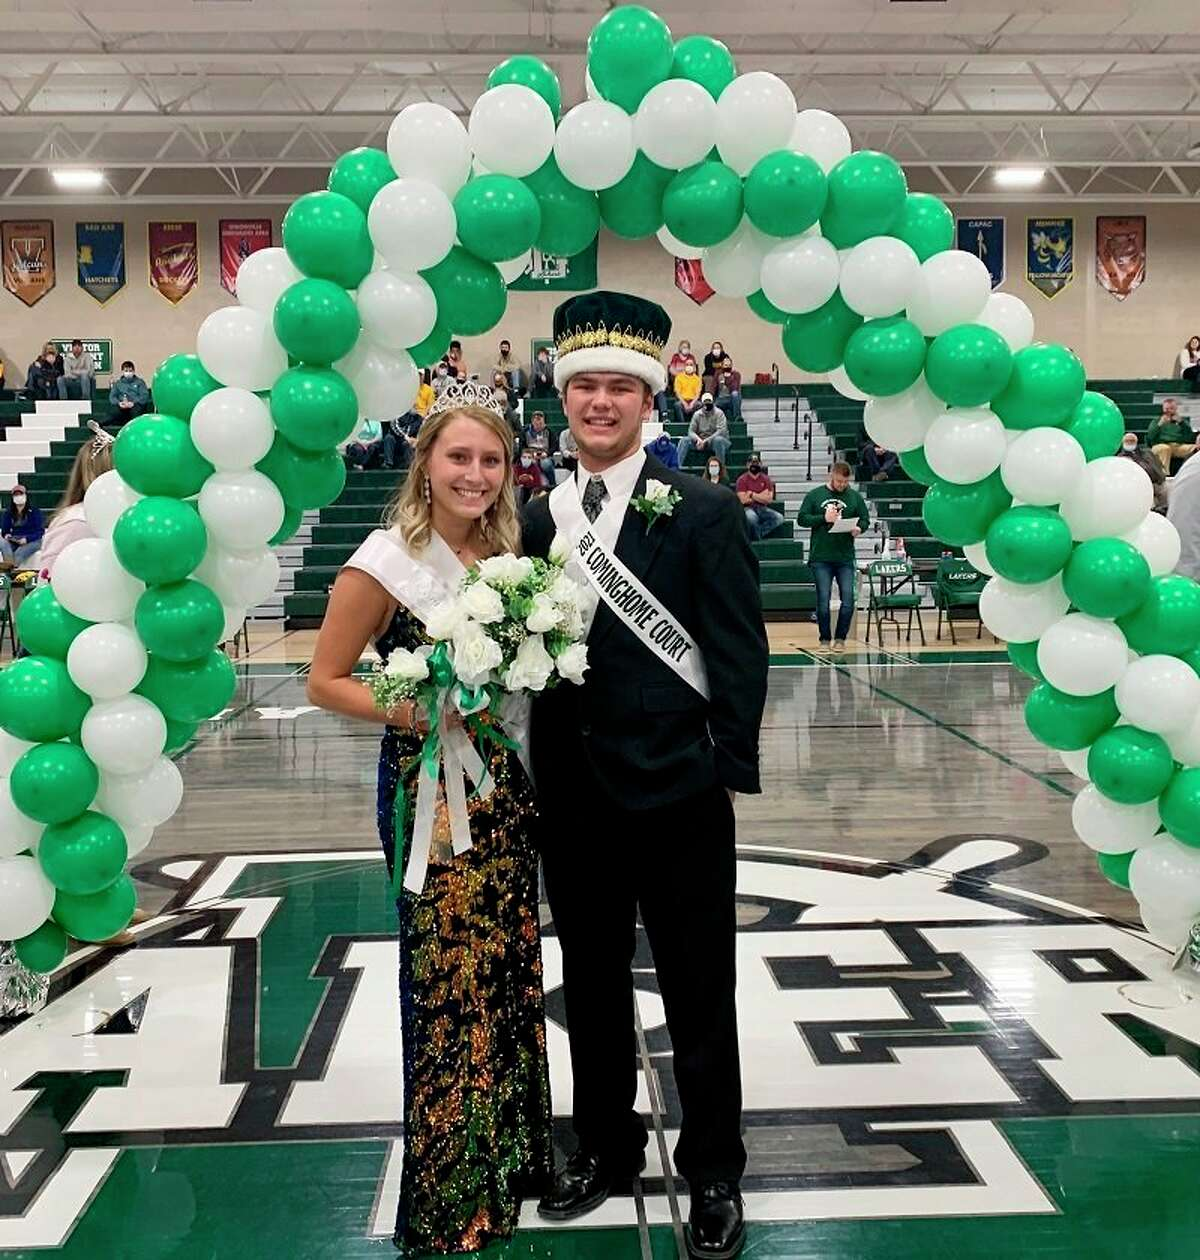 At the Coming Home game, the 2021 Laker Coming Home Prince and Princess were crowned. Collin Schuette was named prince and Kaylynn Carr was named princess. Collin is the son of Steve and Tina Schuette, and Kaylynn is the daughter of William and LeAnn Carr. Collin and Kaylynn were crowned by the 2020 Coming Home Prince and Princess, Hunter Keim and Madisyn Wisenbaugh. (Submitted Photo)